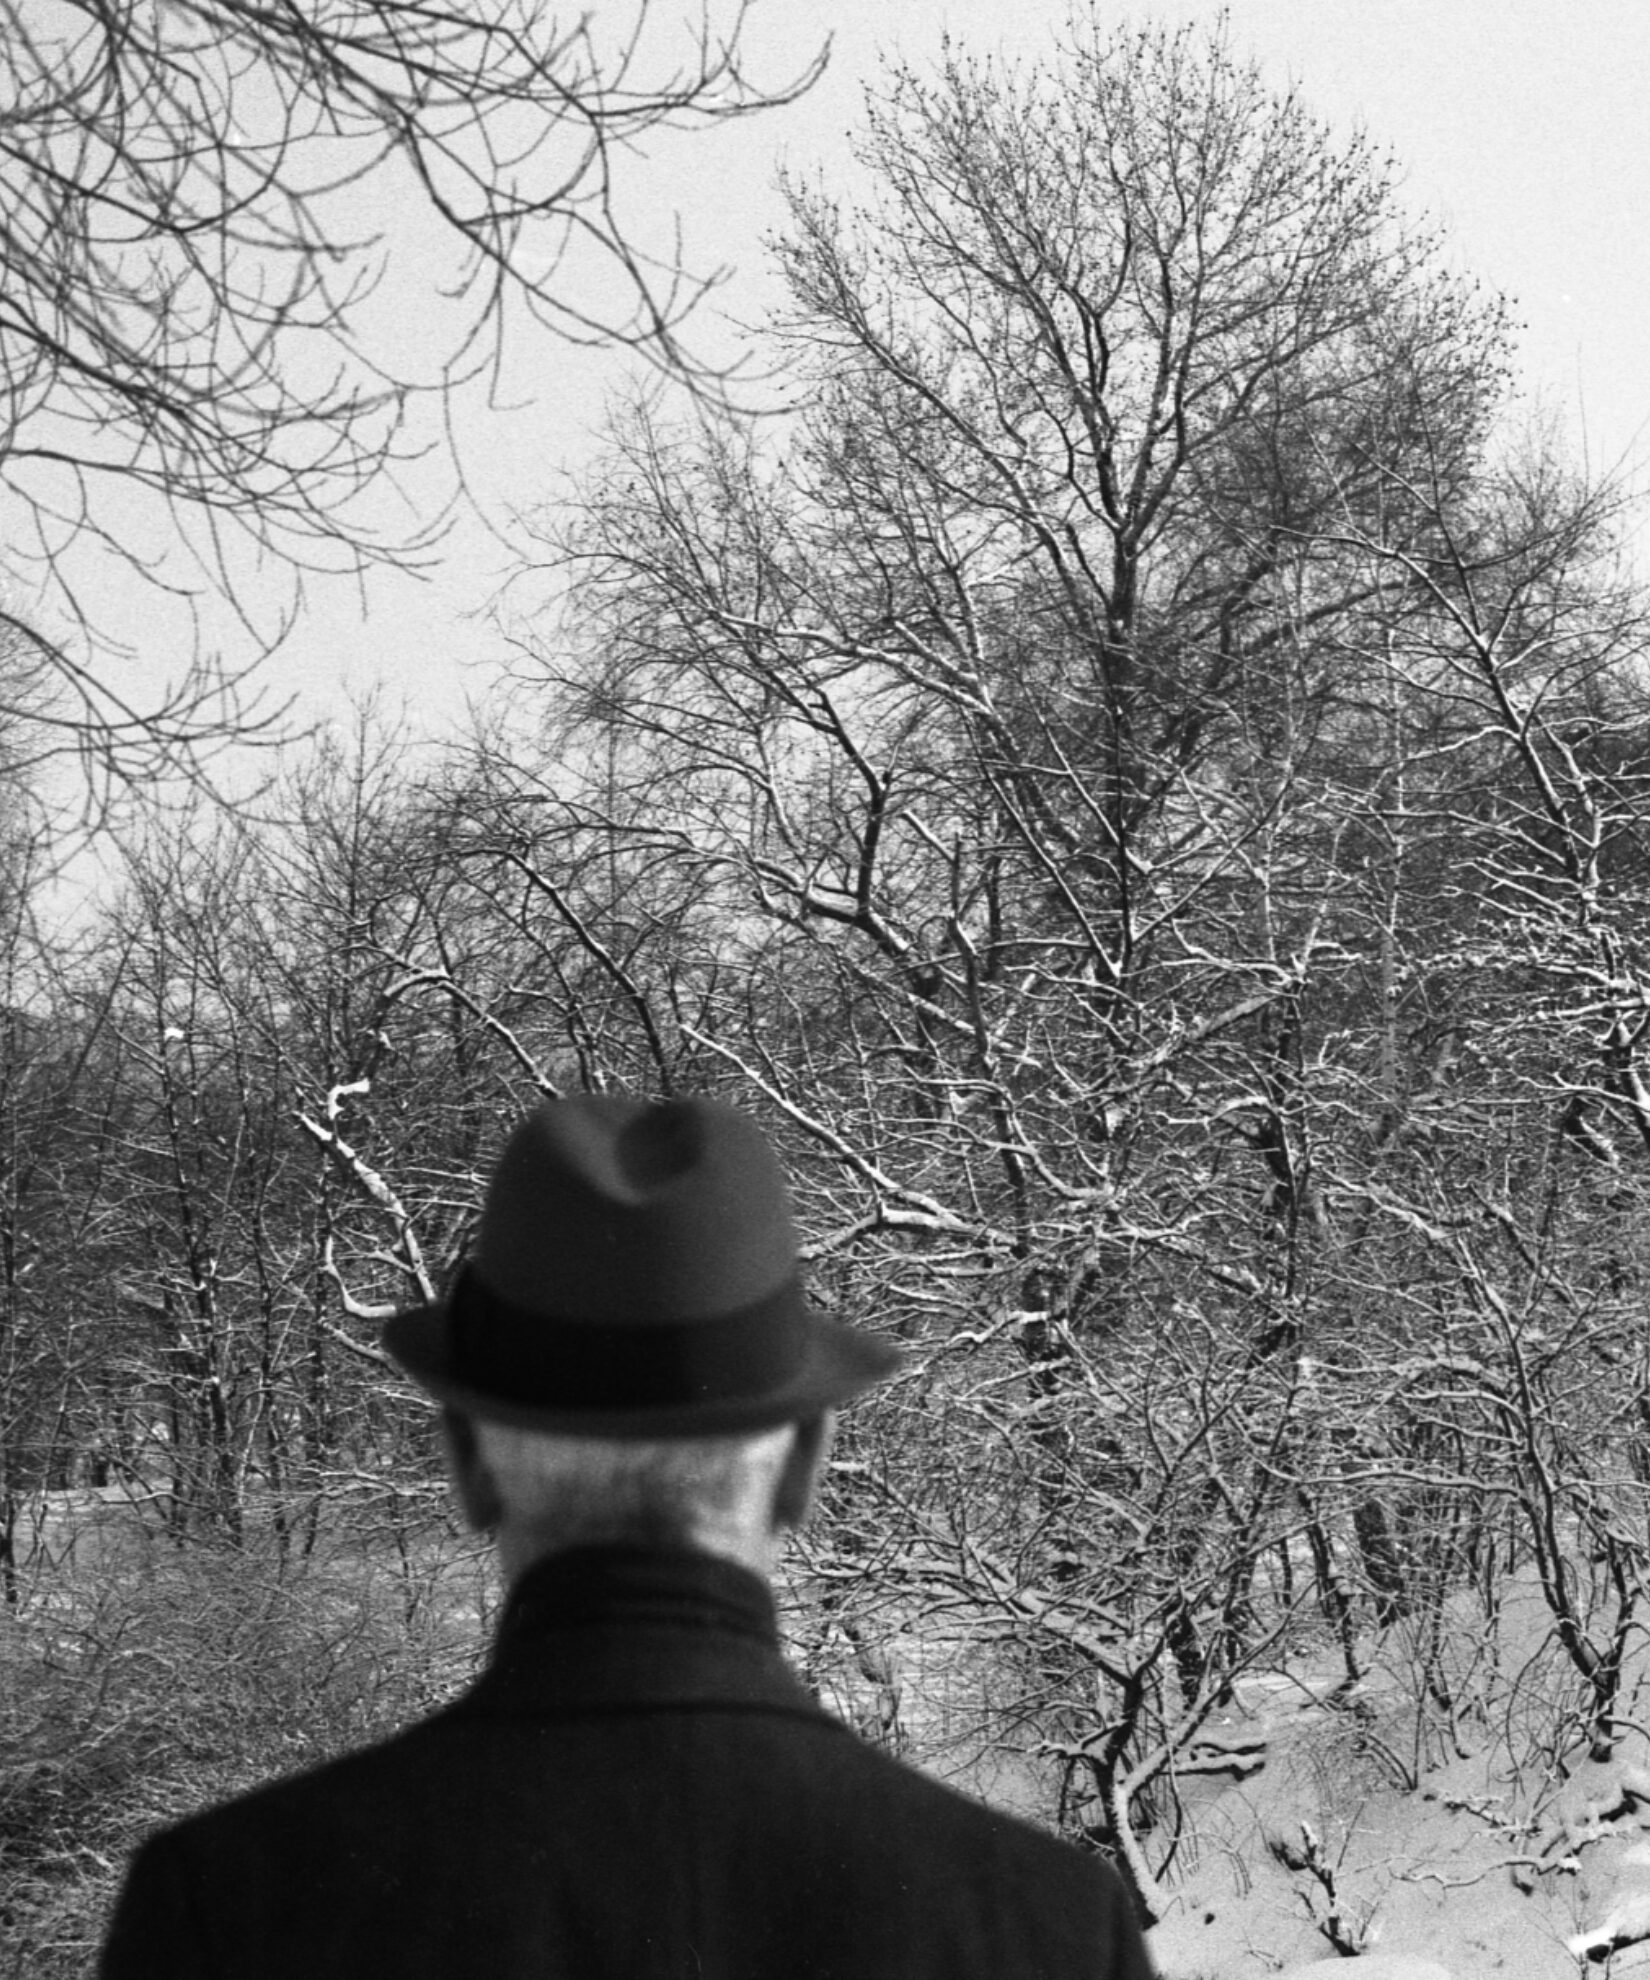 A black-and-white view of a Park landscape in winter, looking past a man taking in the scene